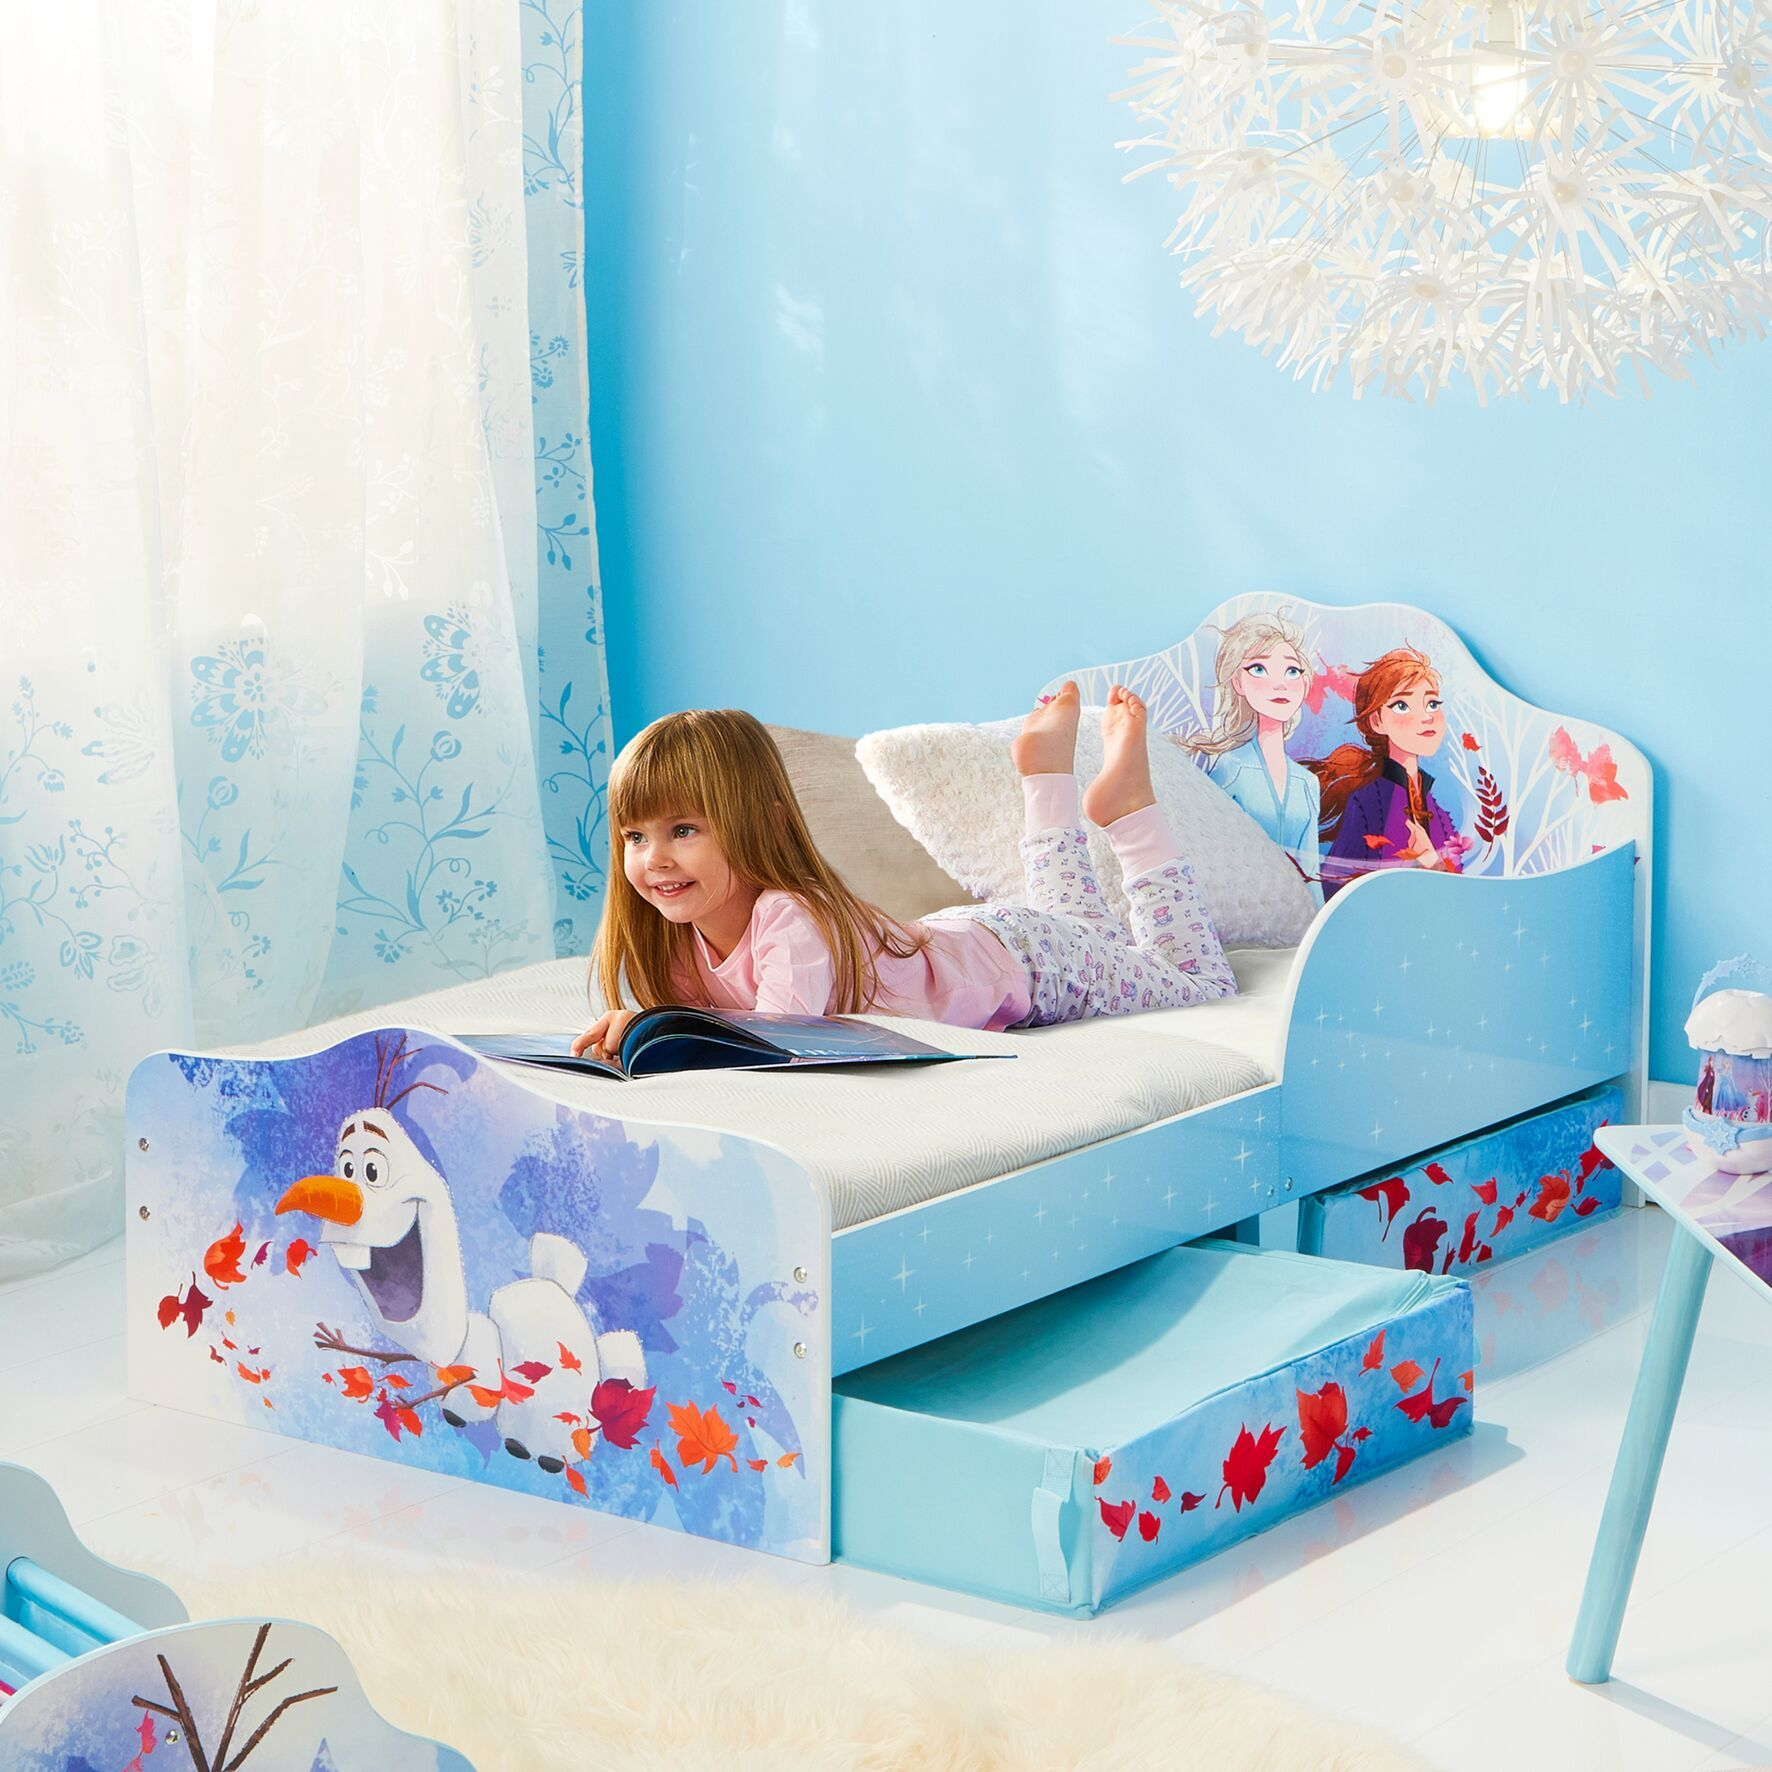 Disney Frozen 2 Kids Toddler Bed With Storage Toddler Bed With Storage Kids Toddler Bed Toddler Bed